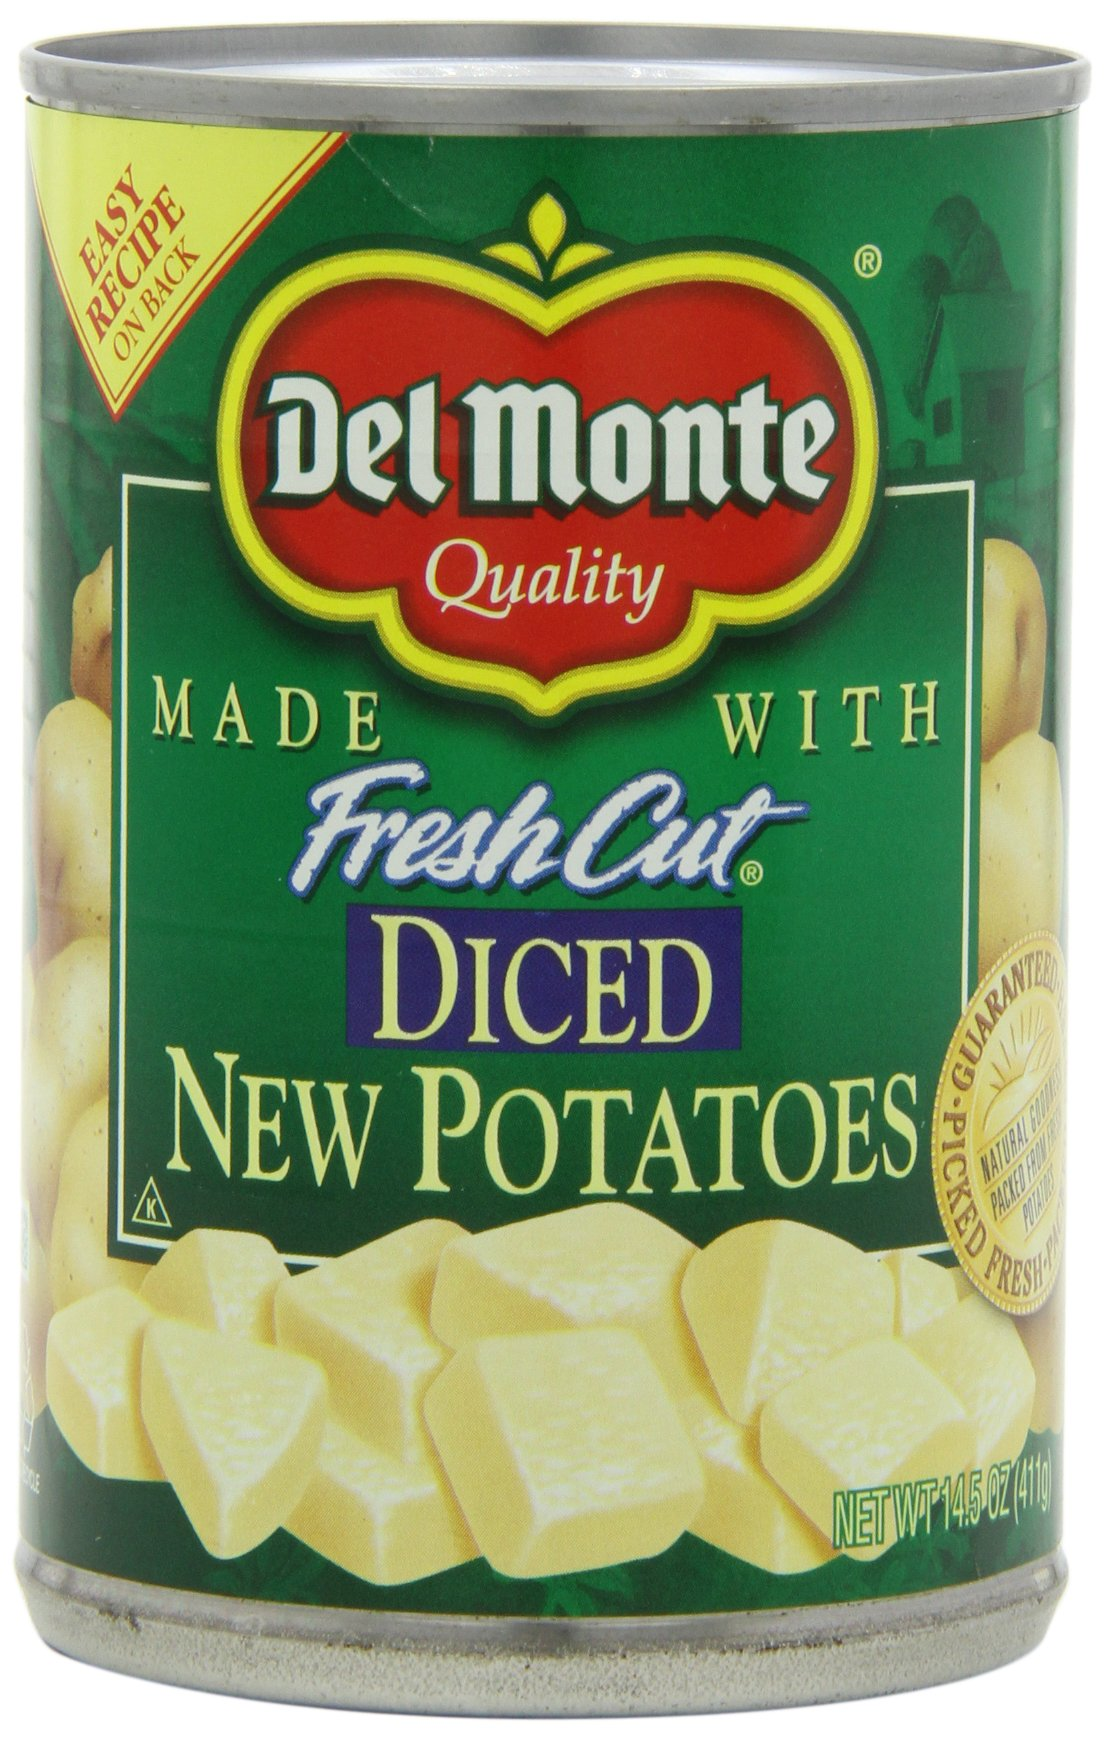 Del Monte Diced Potatoes, 14.5-Ounce (Pack of 8)